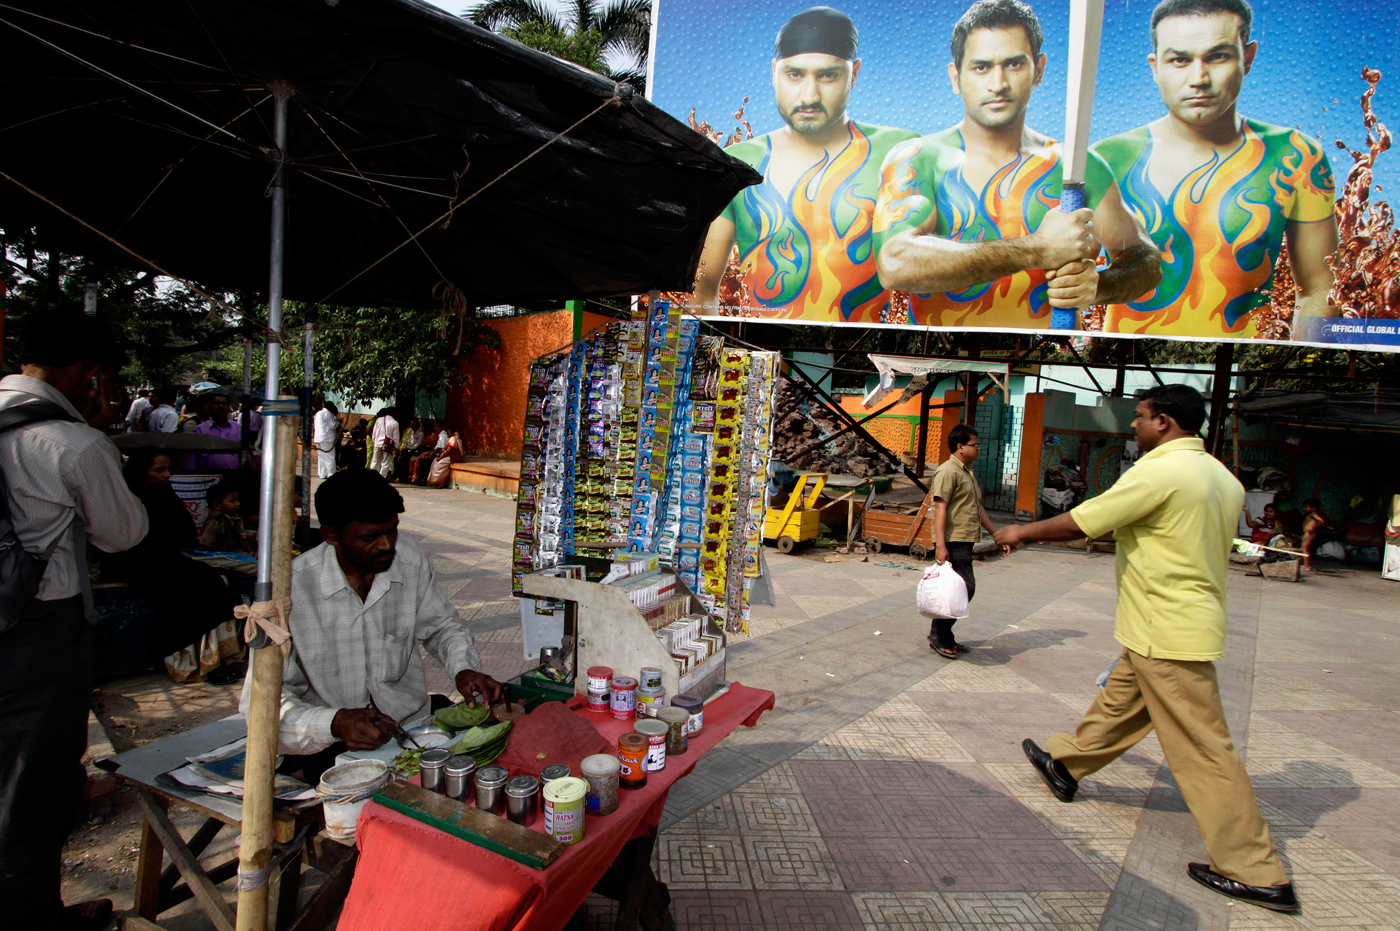 A hoarding featuring India's cricketers overlooks a Kolkata street